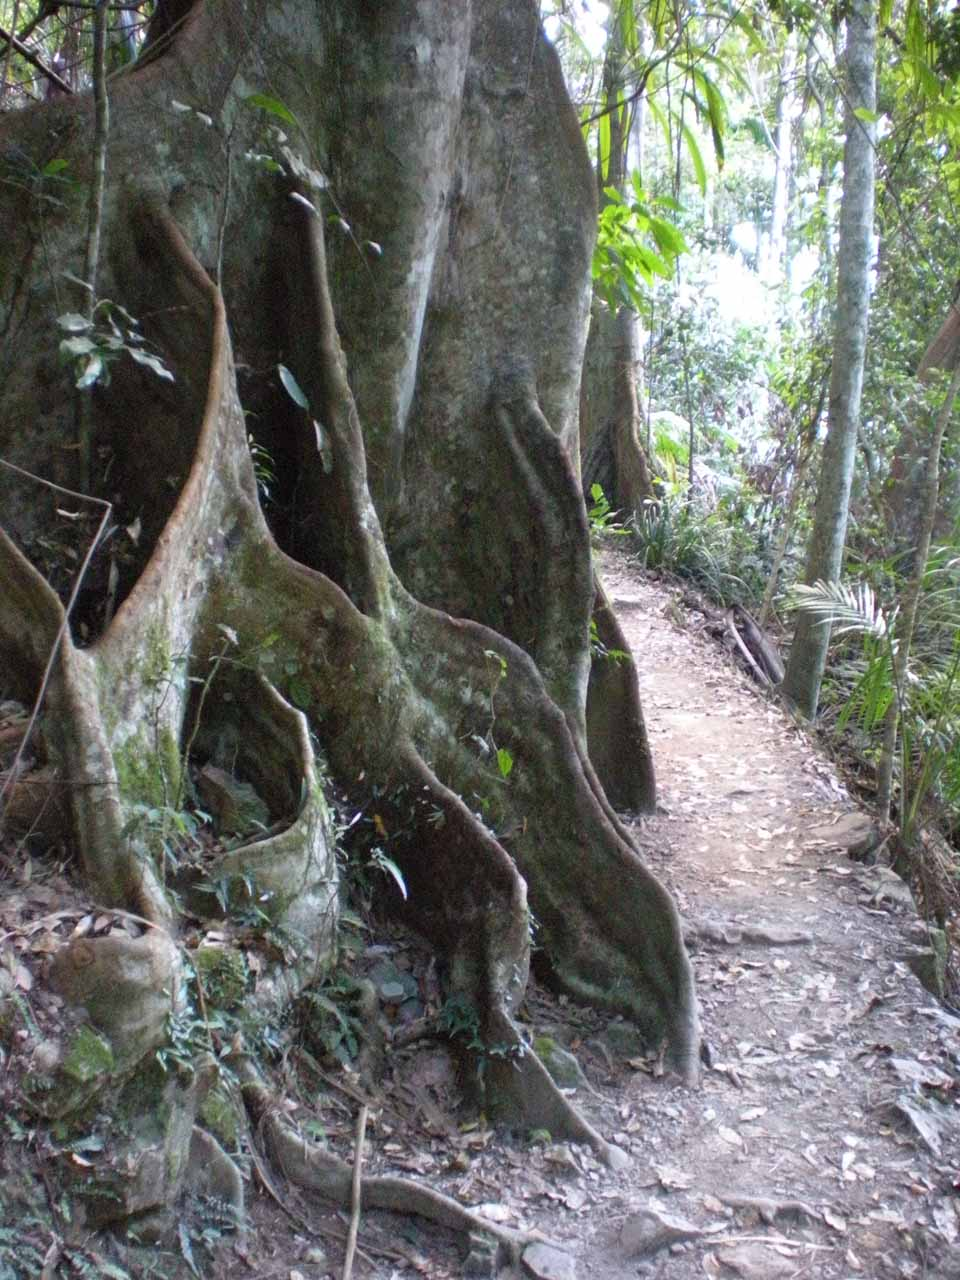 Walking besides some interesting fig trees within the rainforest as we made our way to the base of Purling Brook Falls